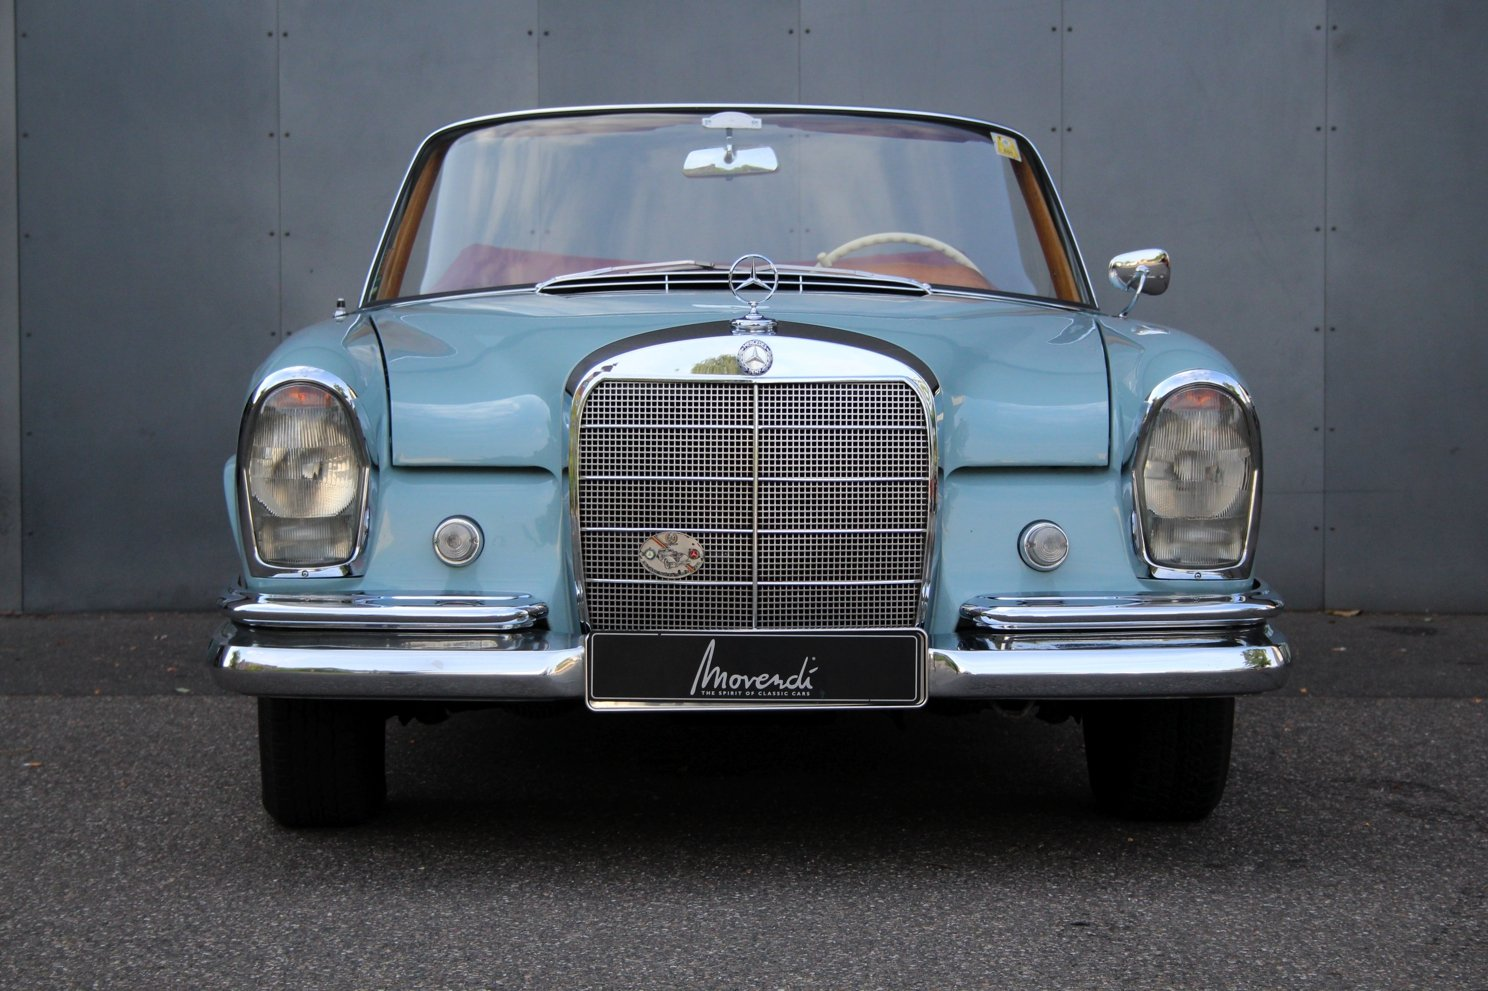 1972 Mercedes-Benz 220 SEB Cabriolet LHD For Sale (picture 6 of 6)